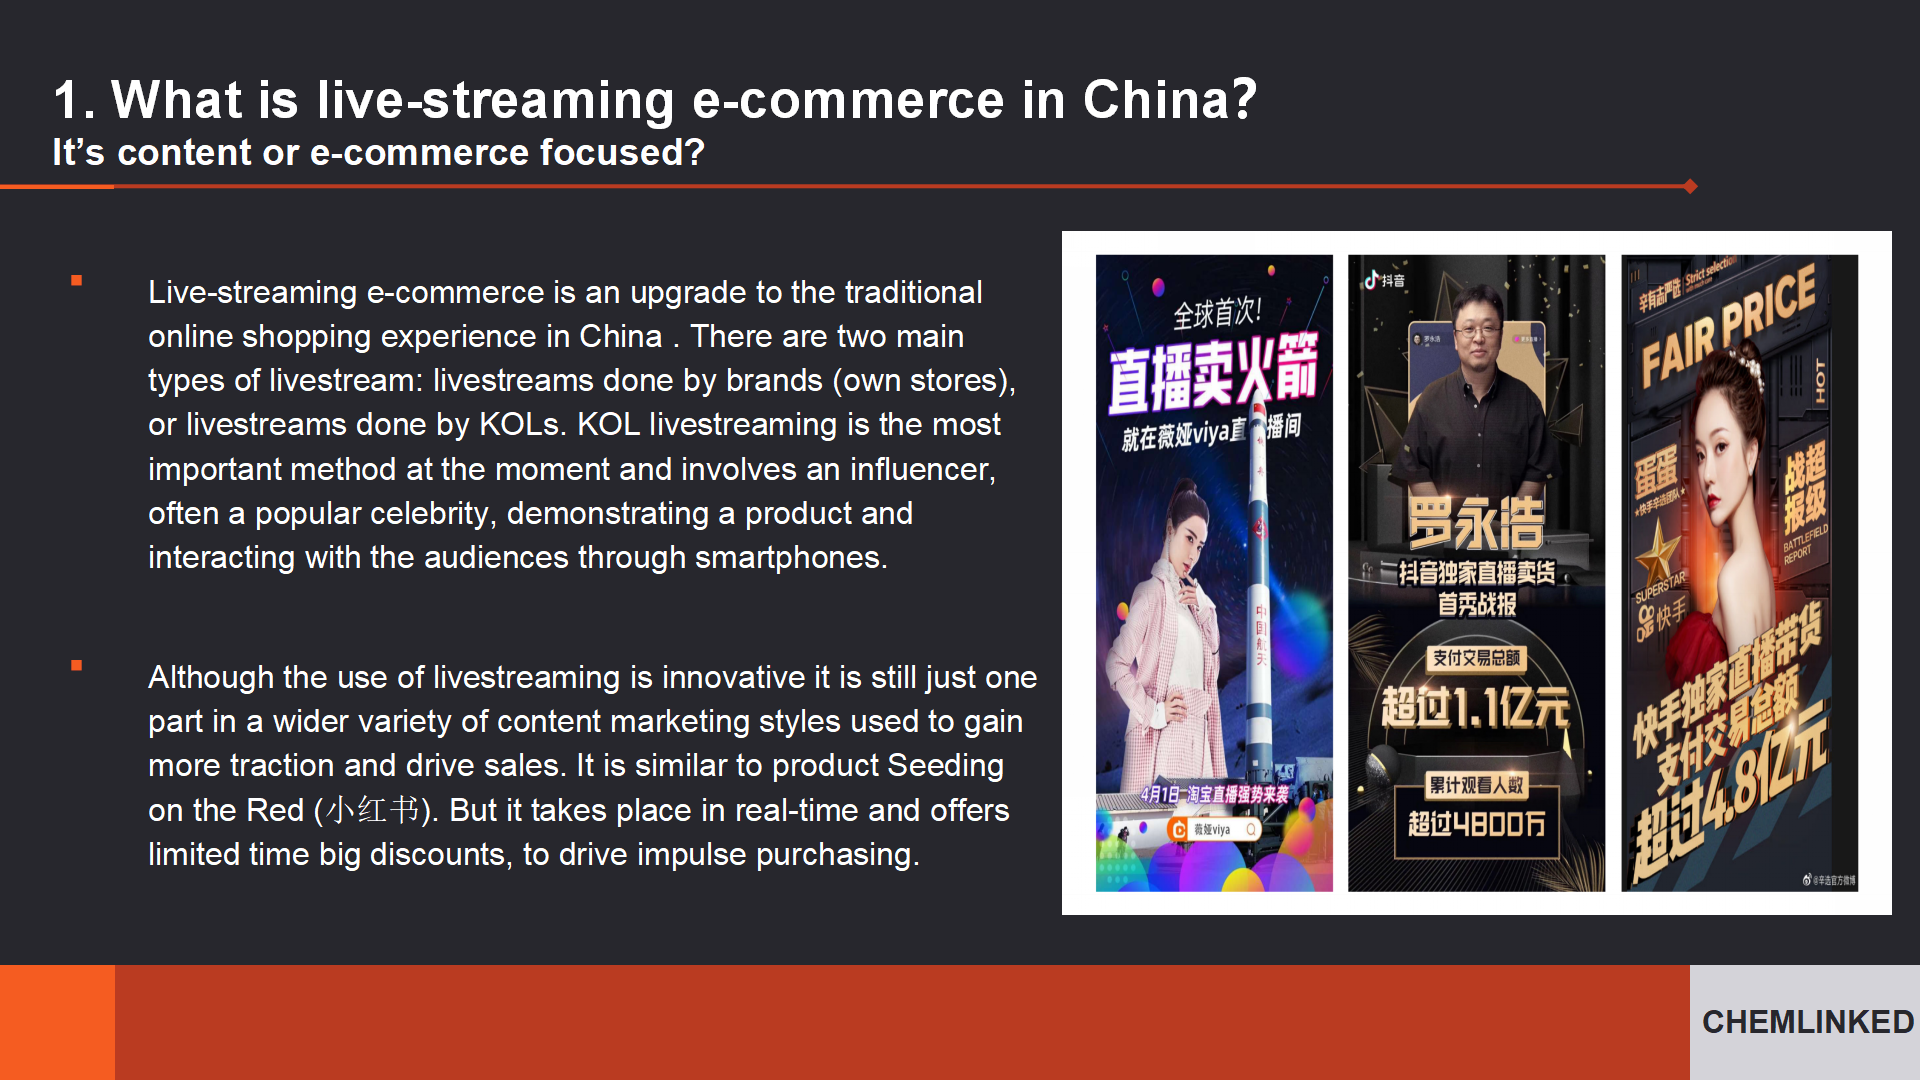 the-truth-about-live-streaming-e-commerce-in-china-7-questions_02.png